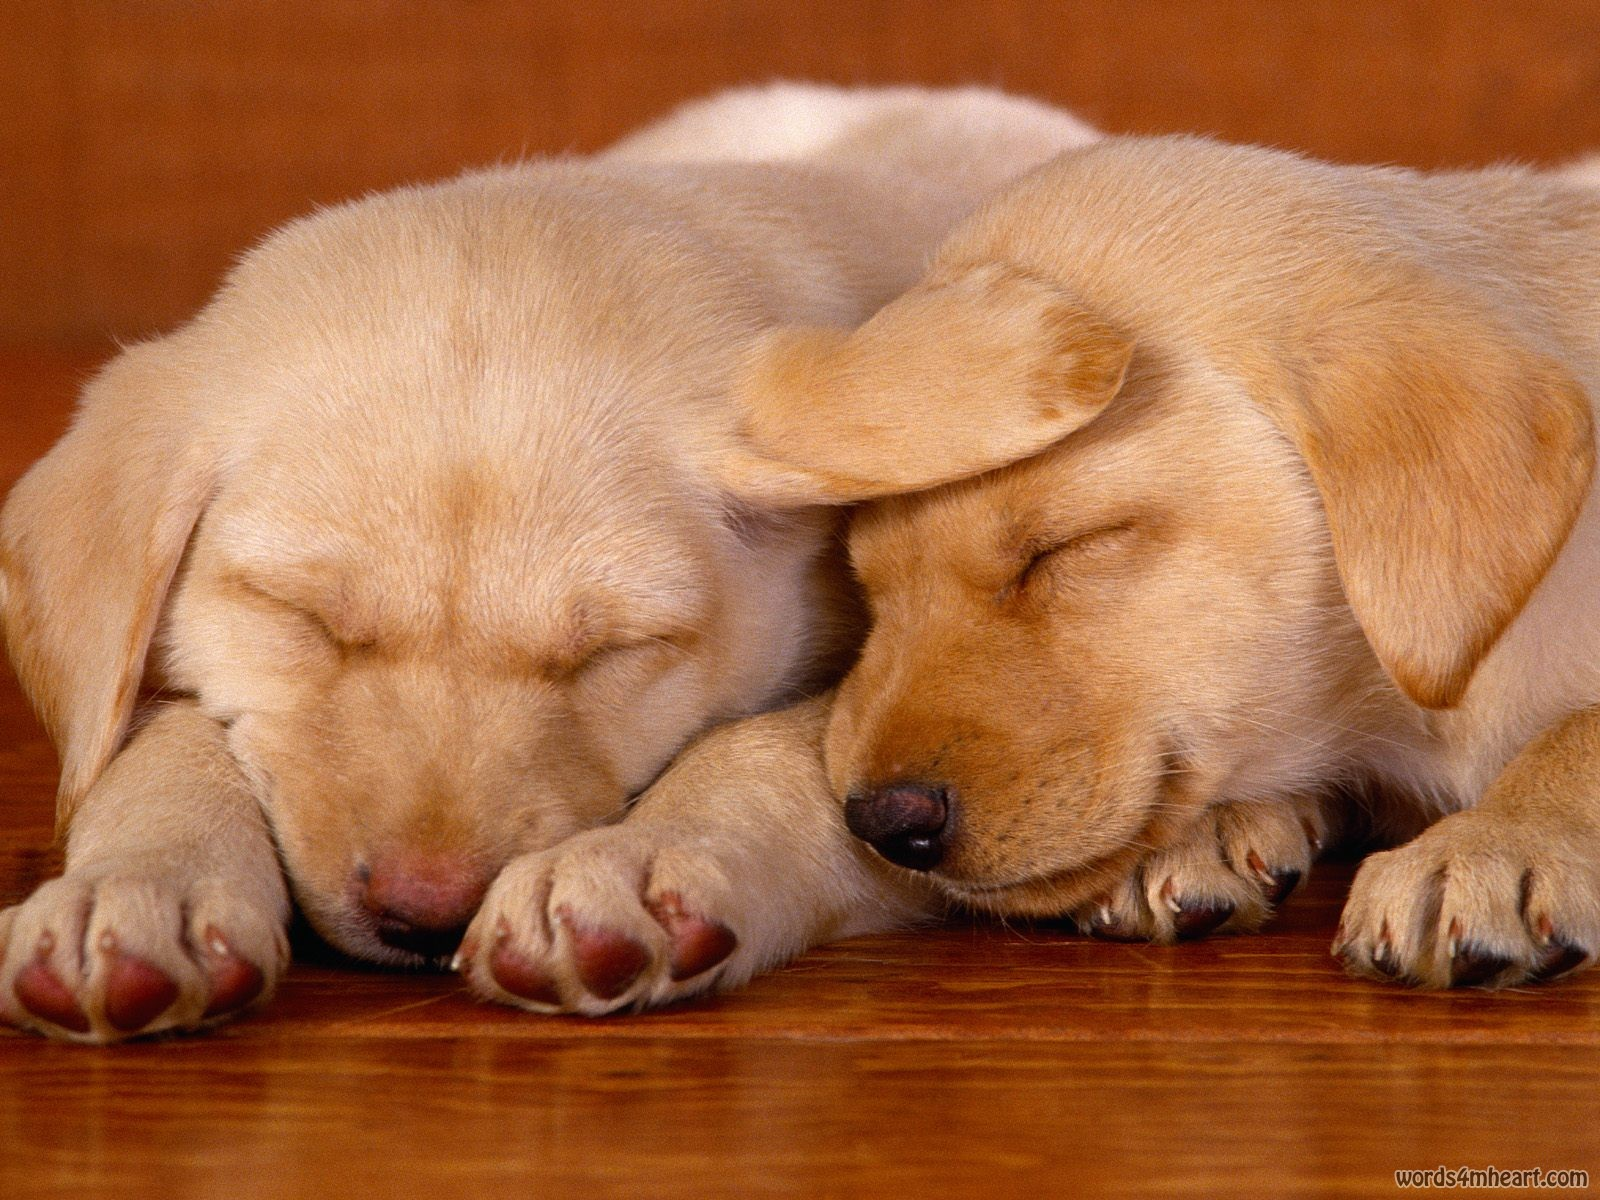 Animals Zoo Park: 8 Cute Puppies Wallpapers, Cute Puppy Wallpapers for Desktop